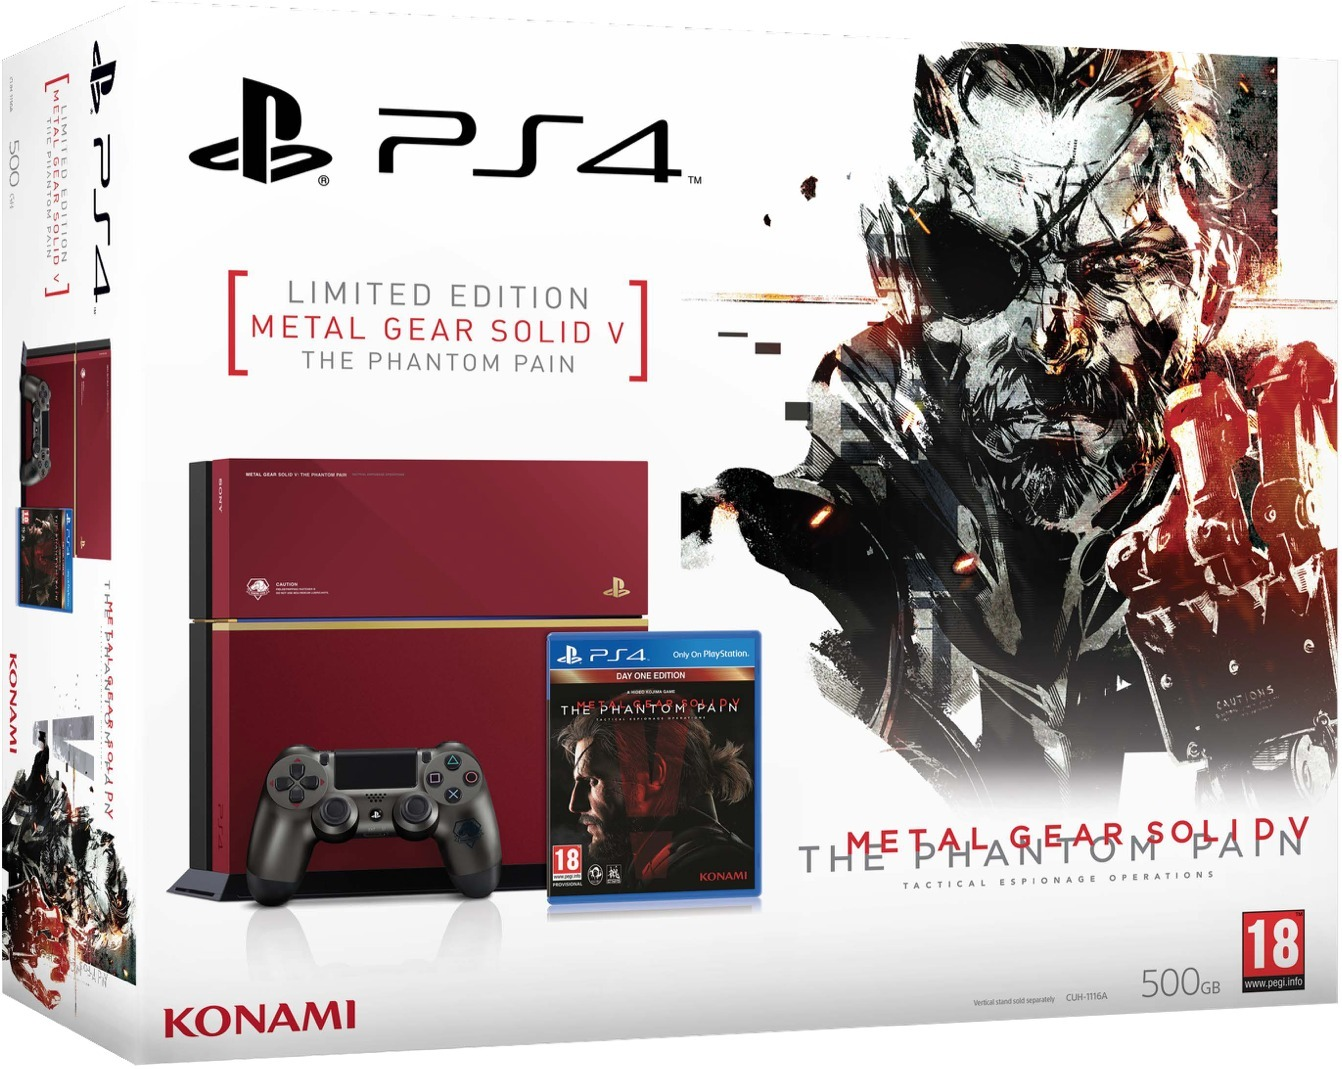 PlayStation 4 (500GB, Limited Edition) + Metal Gear Solid V: The Phantom Pain